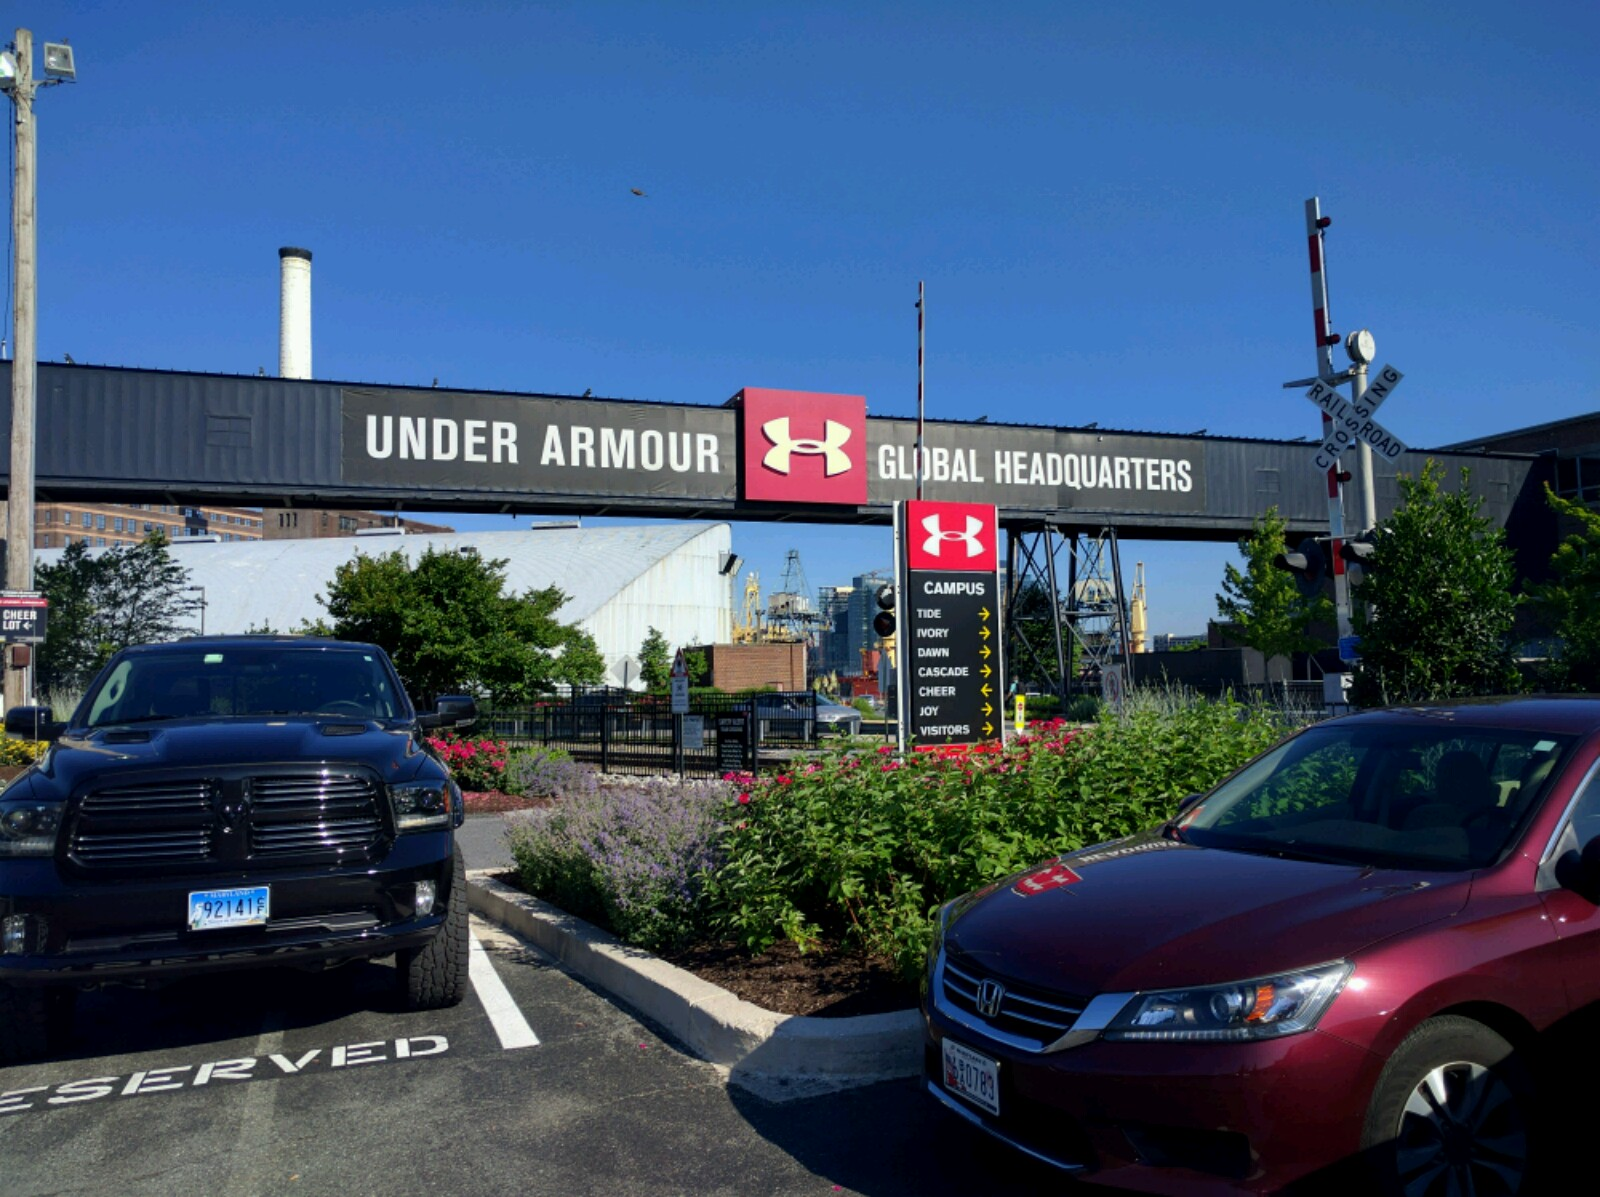 Under Armour's corporate headquarters in Baltimore, Maryland.